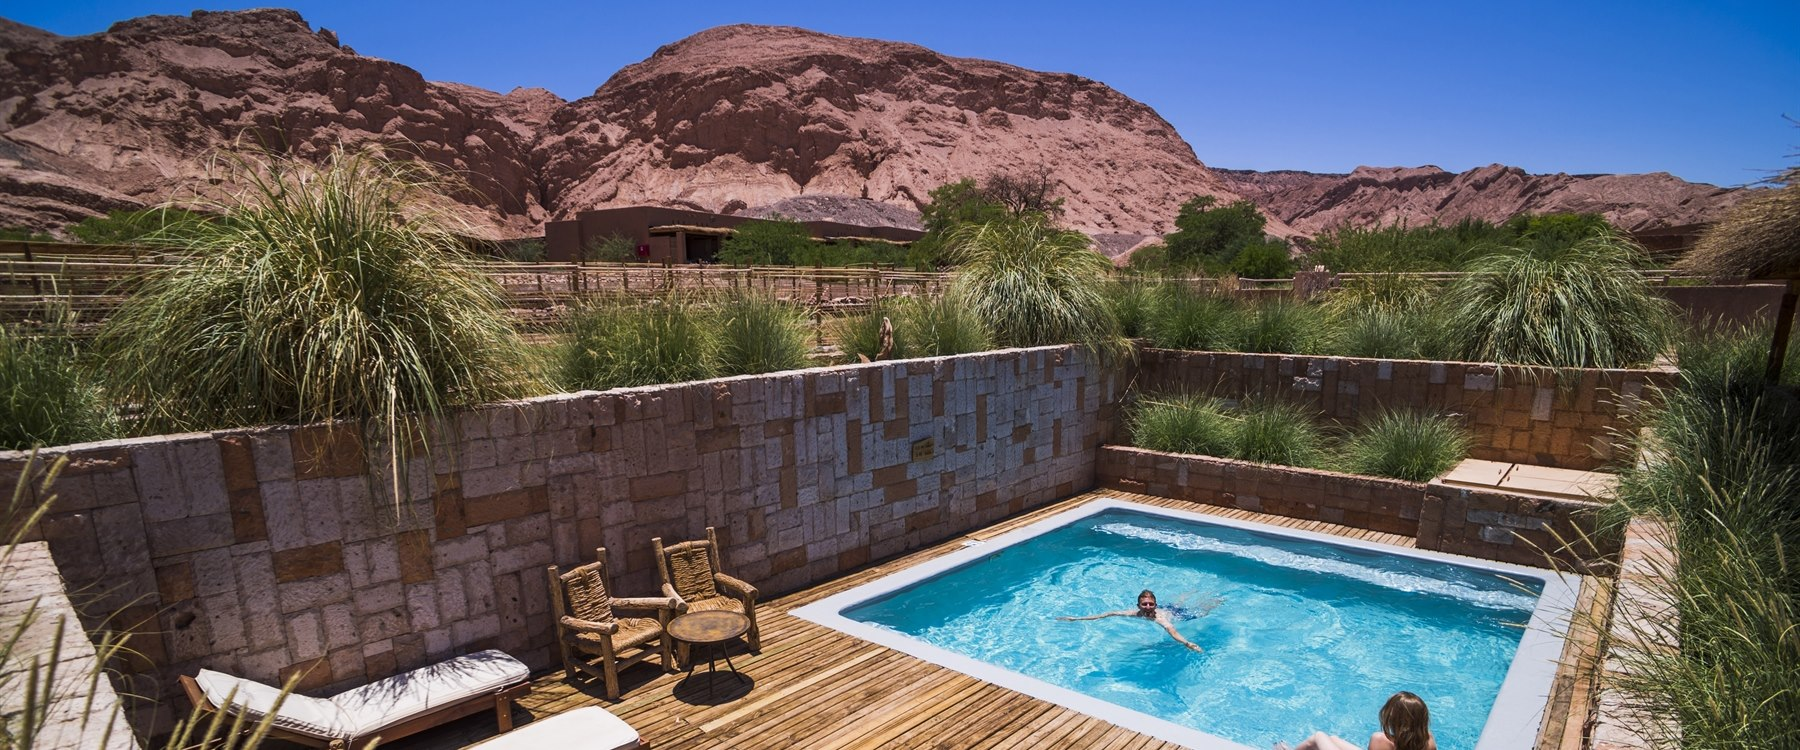 private pool area at alto atacama, Chile